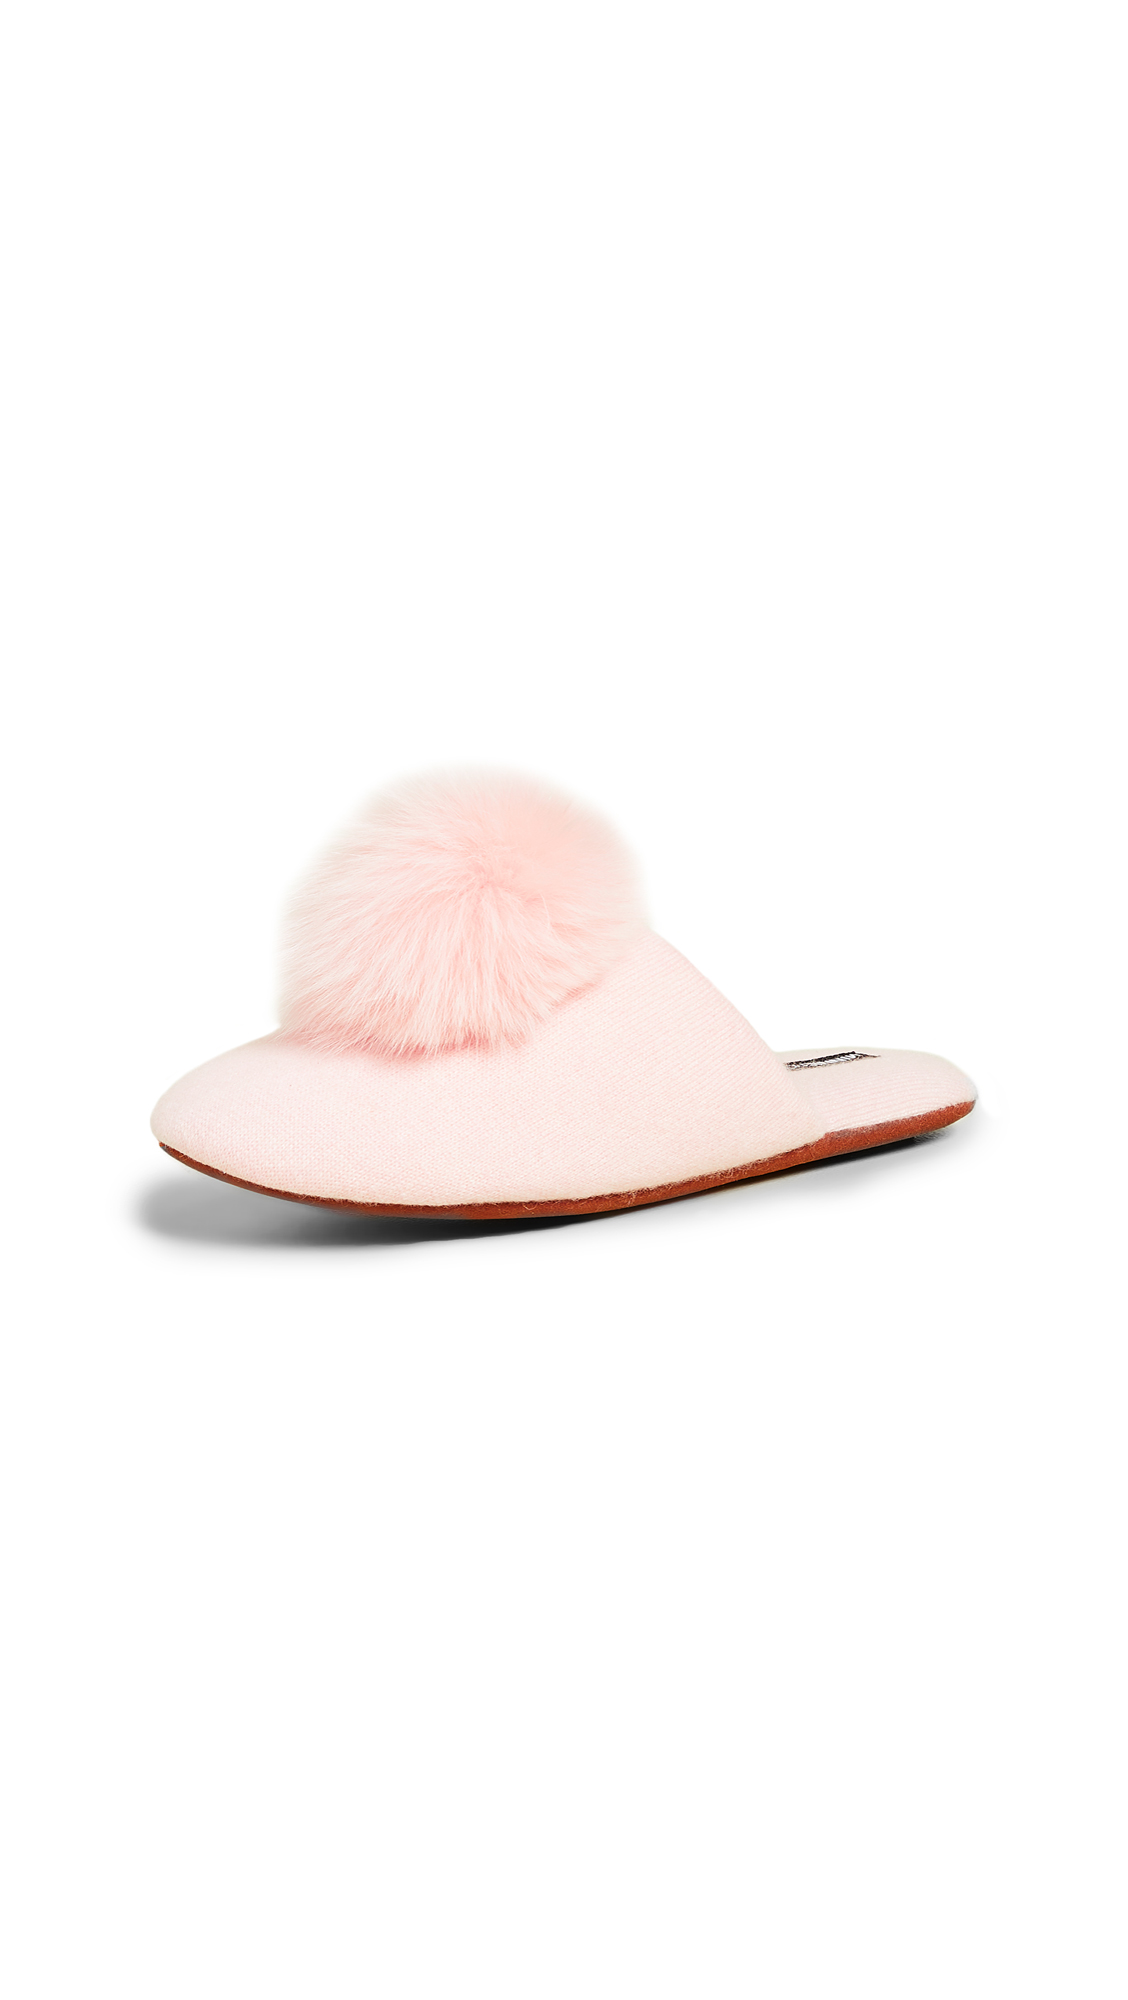 Minnie Rose Cashmere Pom Pom Slippers - Blush Pink